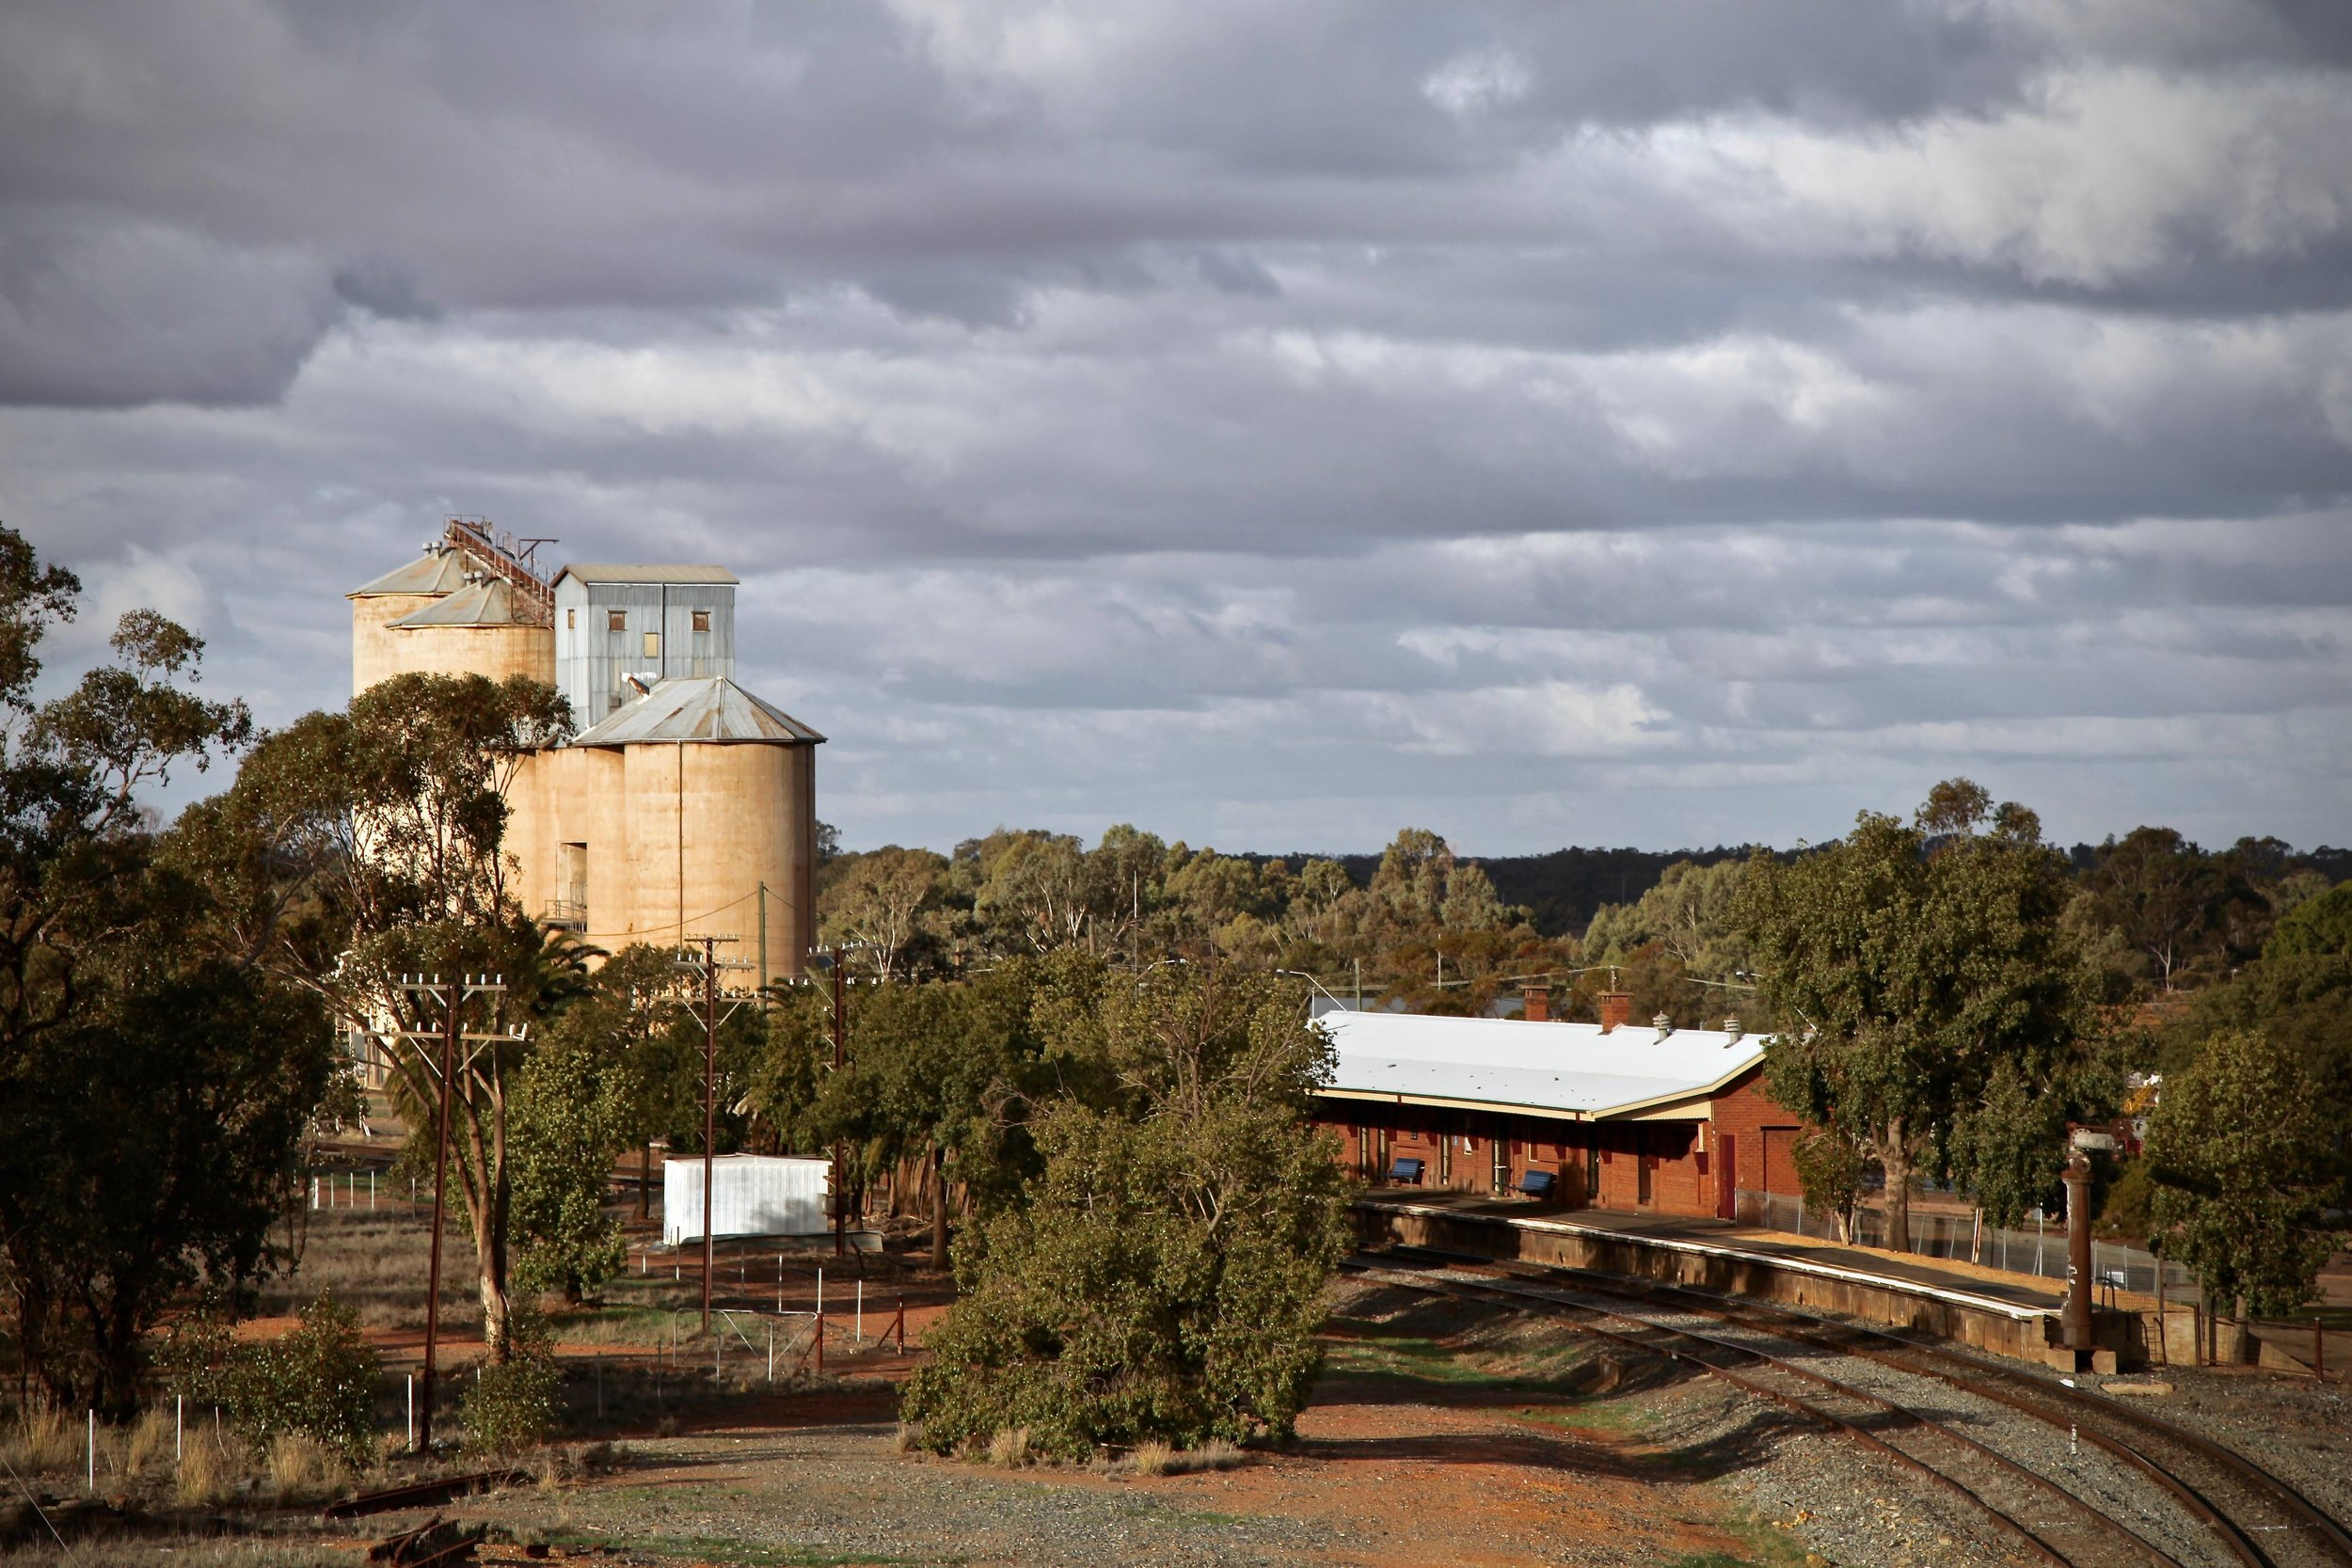 Condobolin is about 450km west of Sydney.